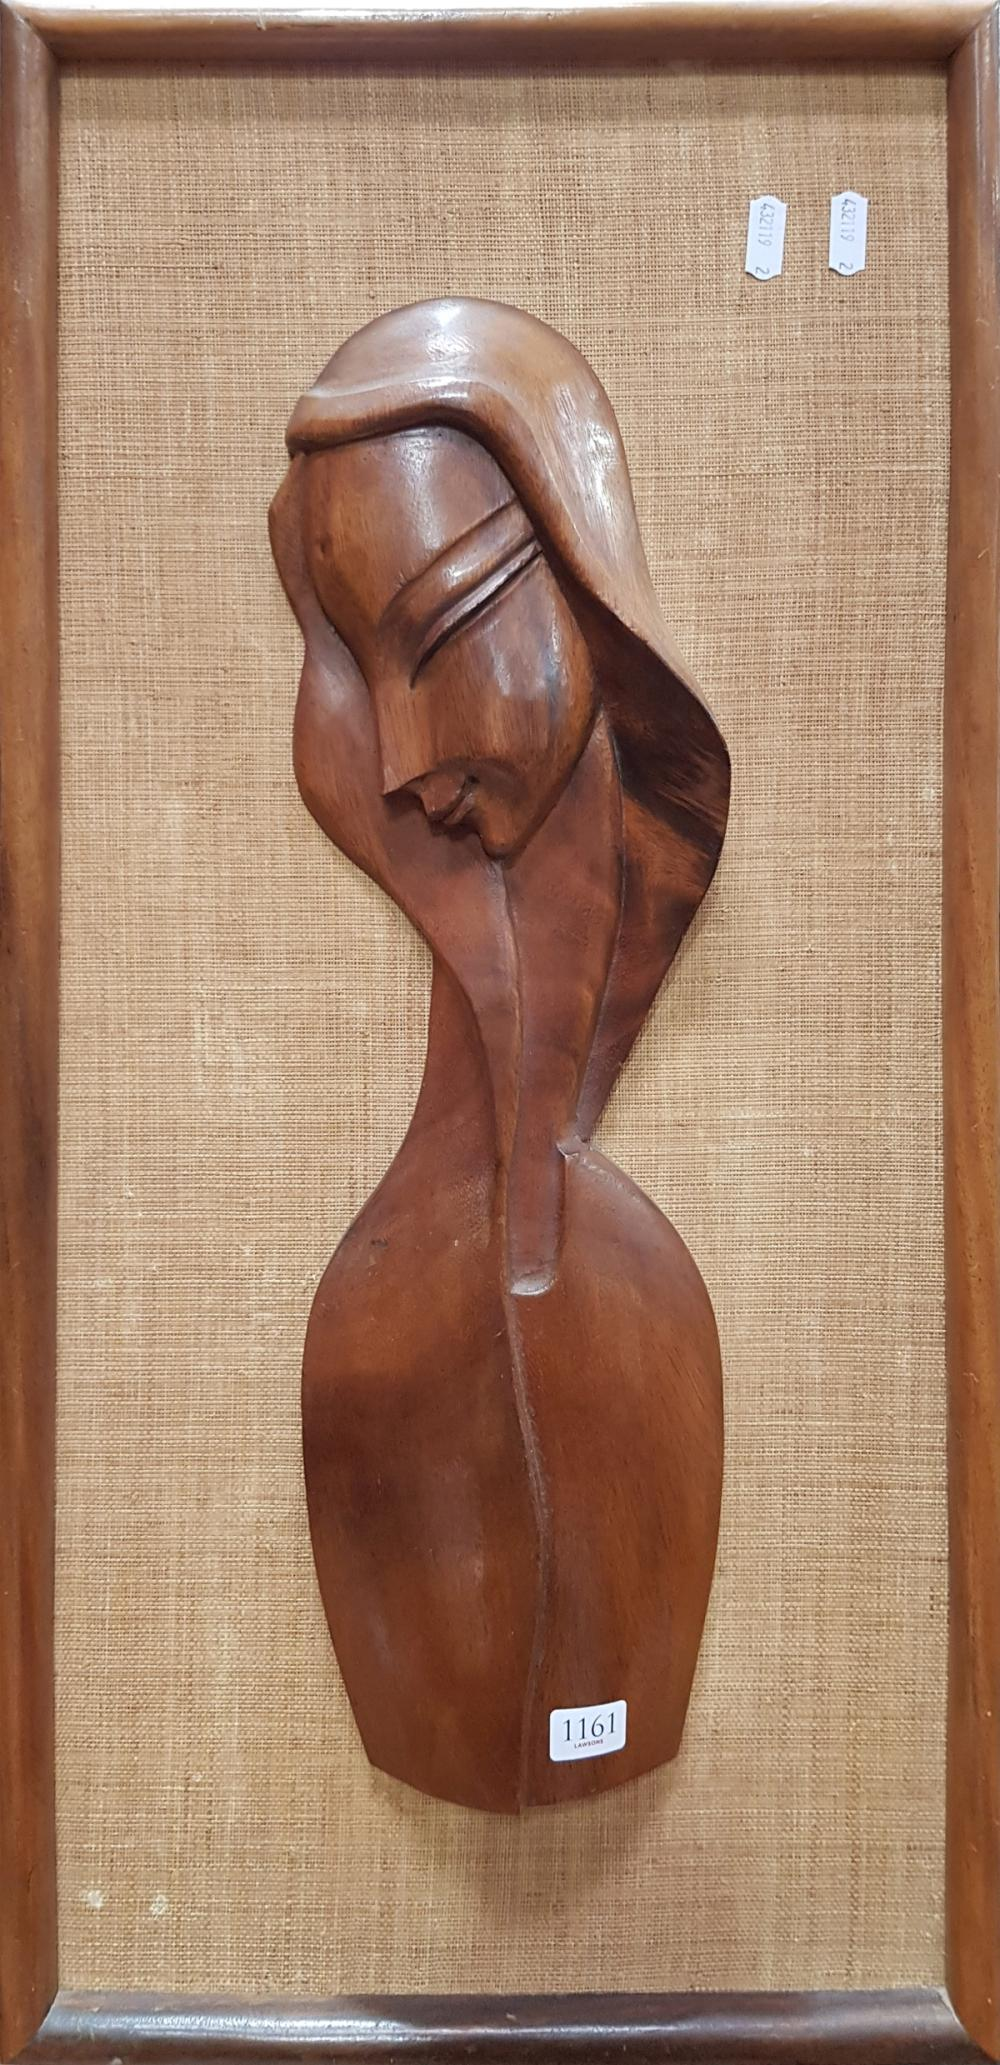 Teak Figure in Fabric Frame